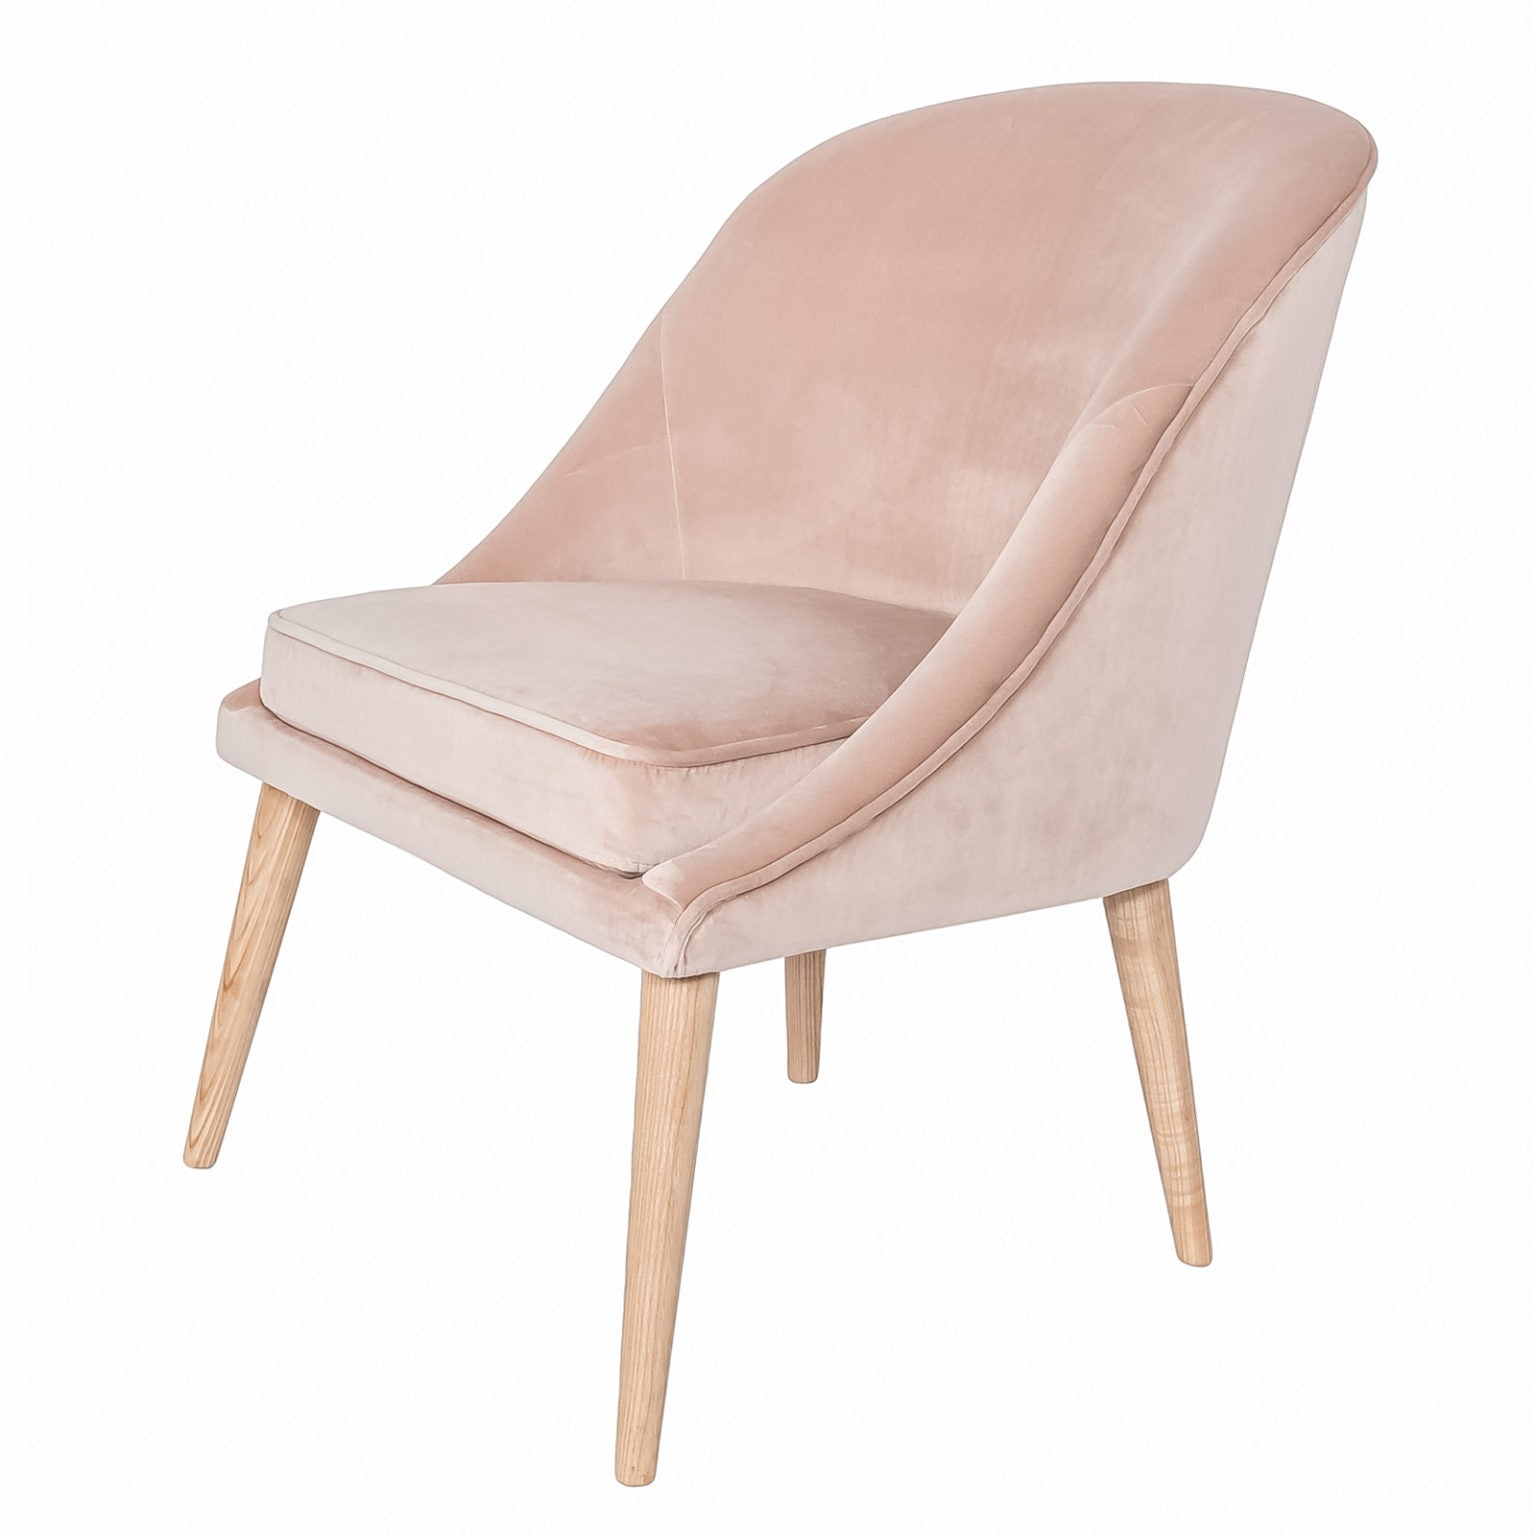 Bree Chair - Pale Coral